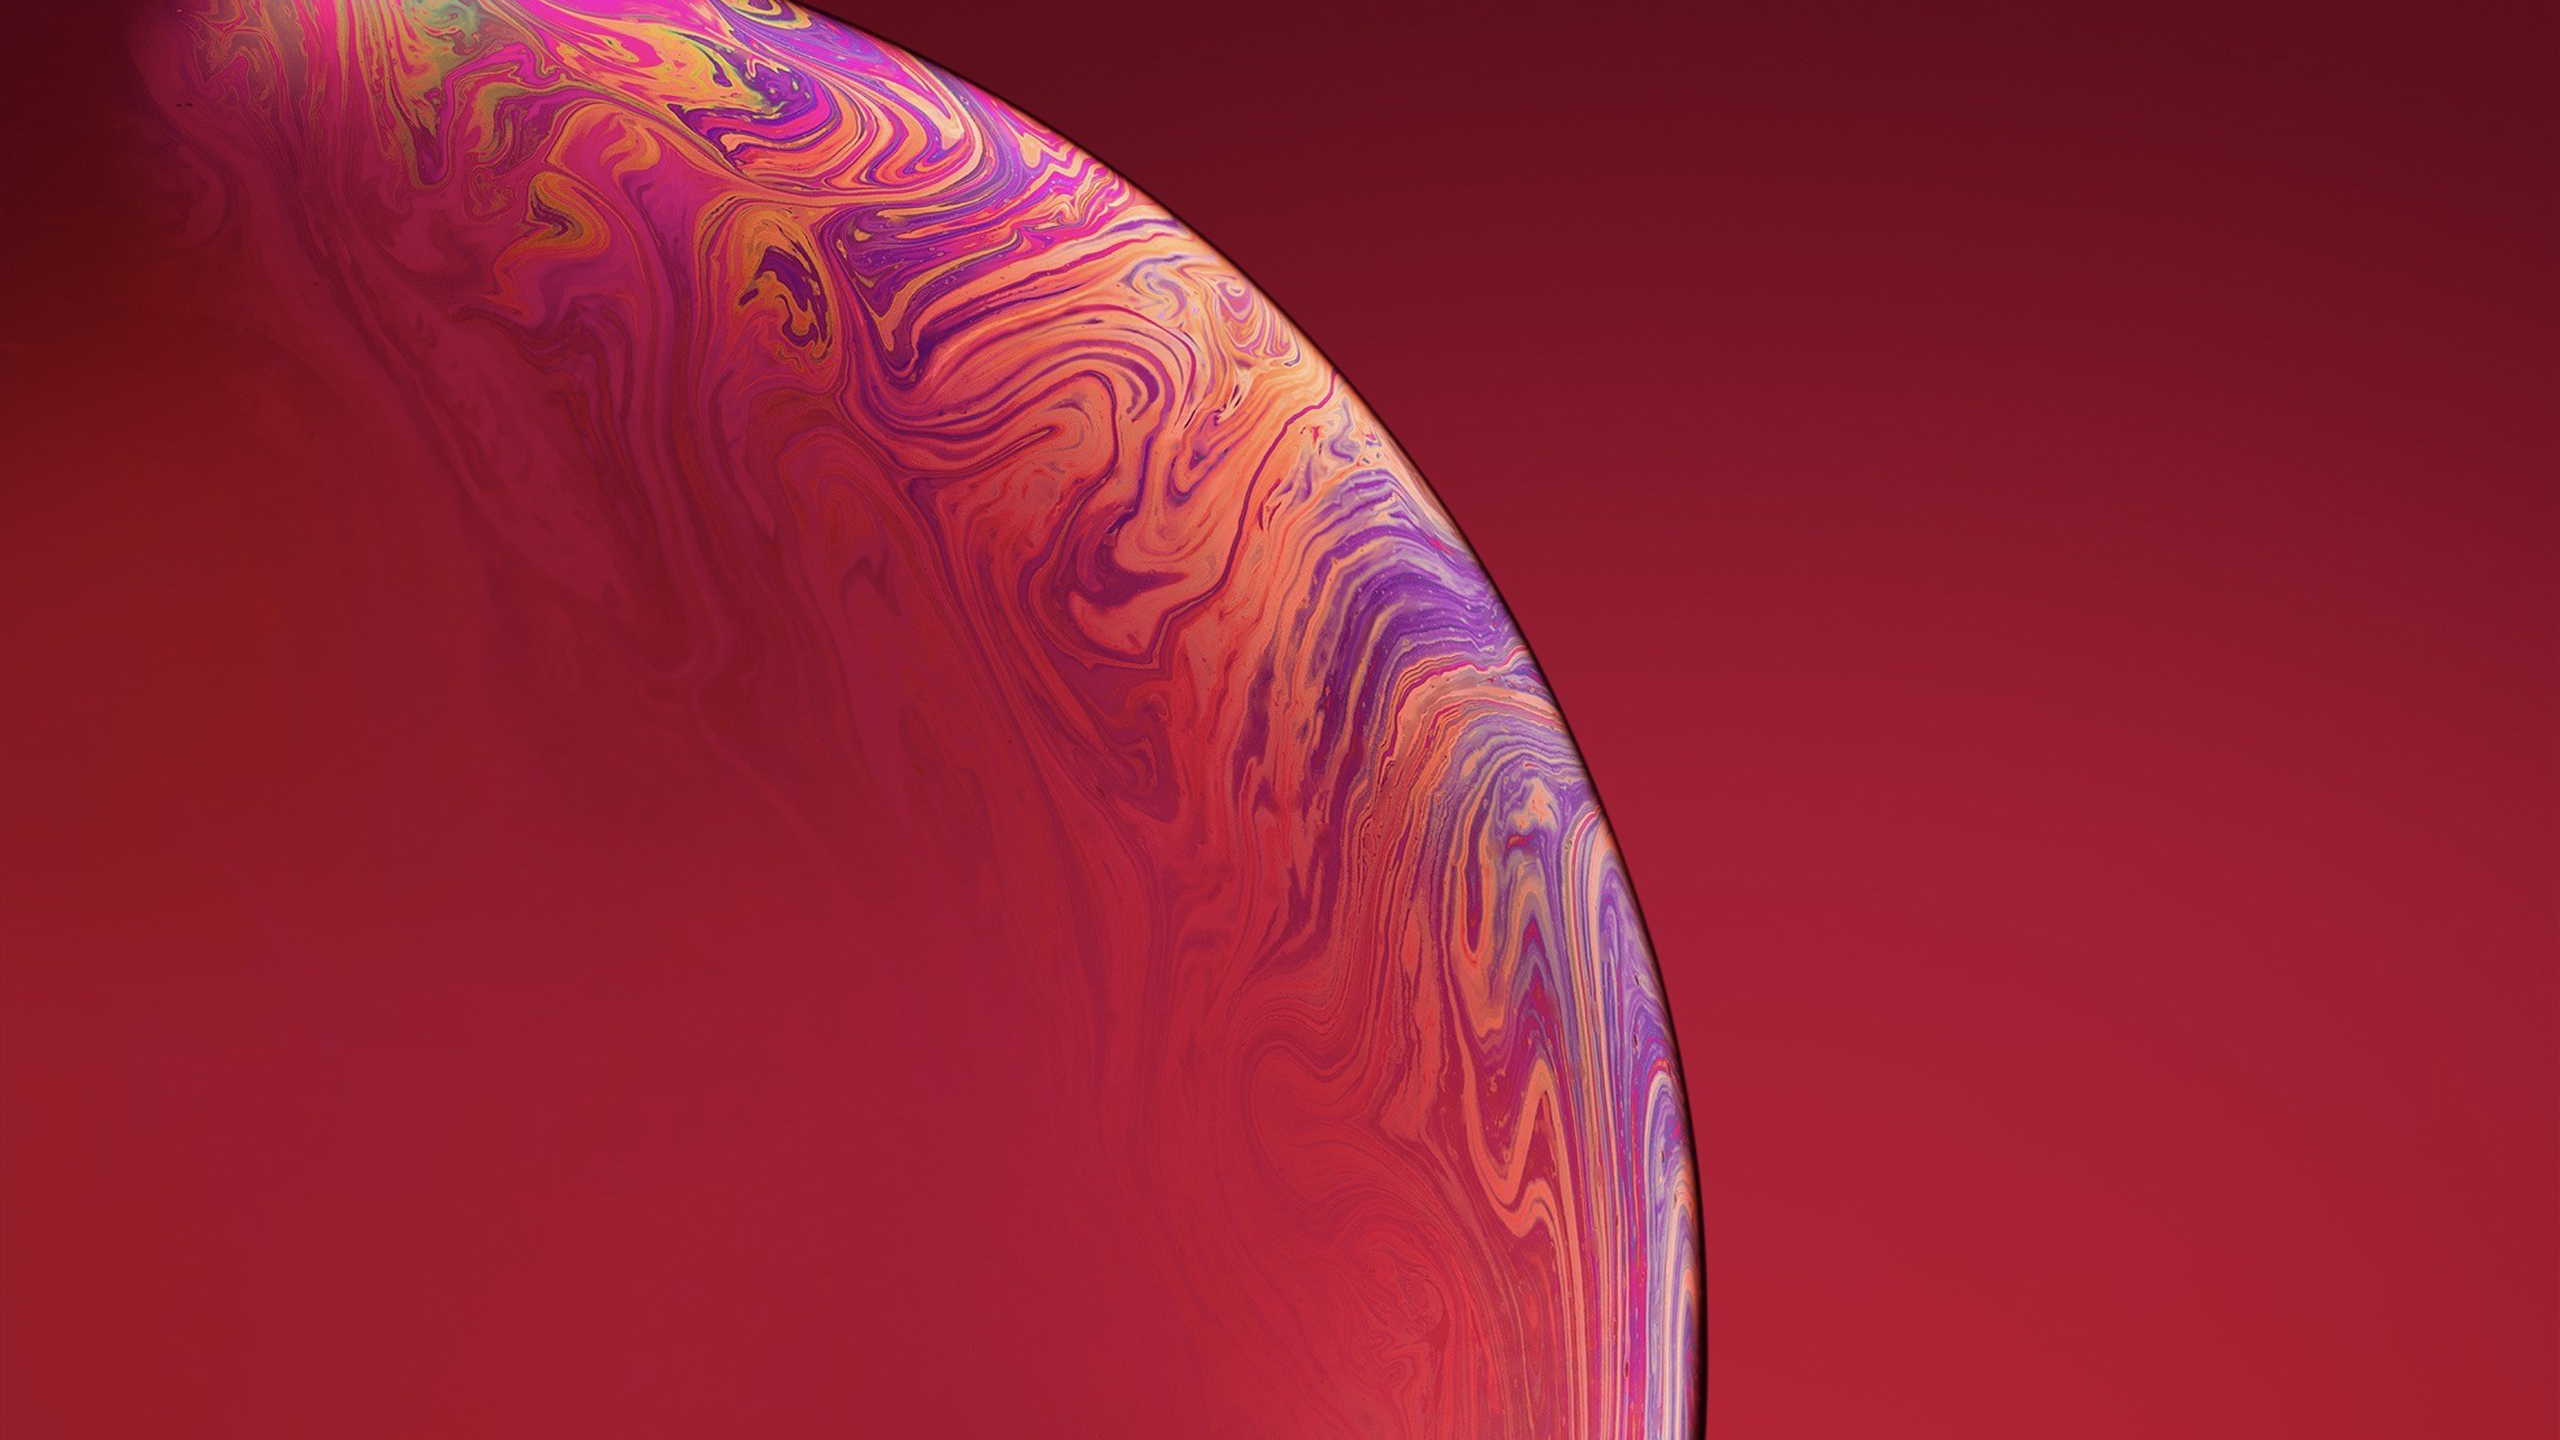 3840x2160 IPhone Xs Double Bubble Red 4k HD 4k Wallpapers